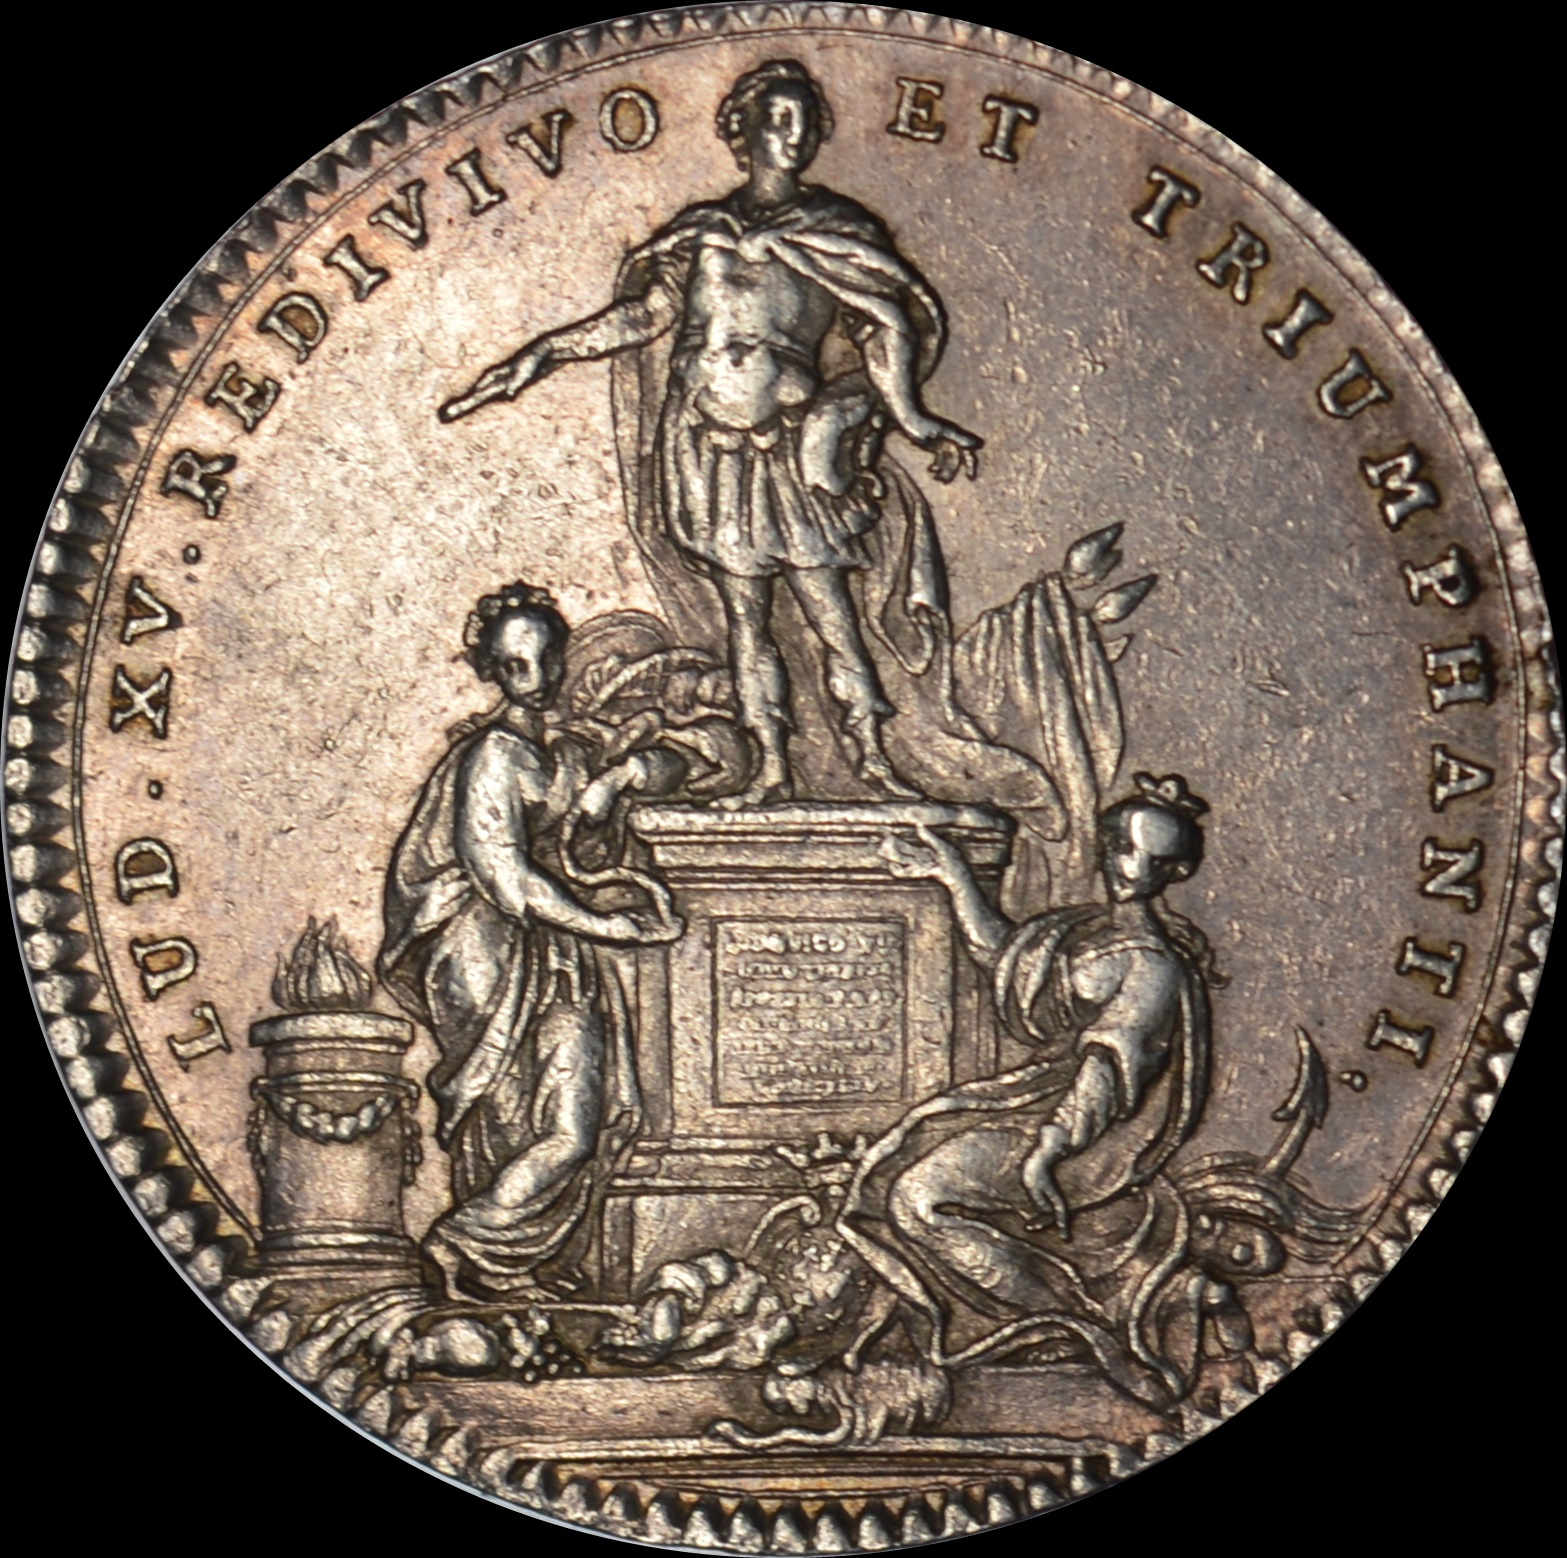 Louis XV - 1754 statue of Louis XV in Brittany silver medal